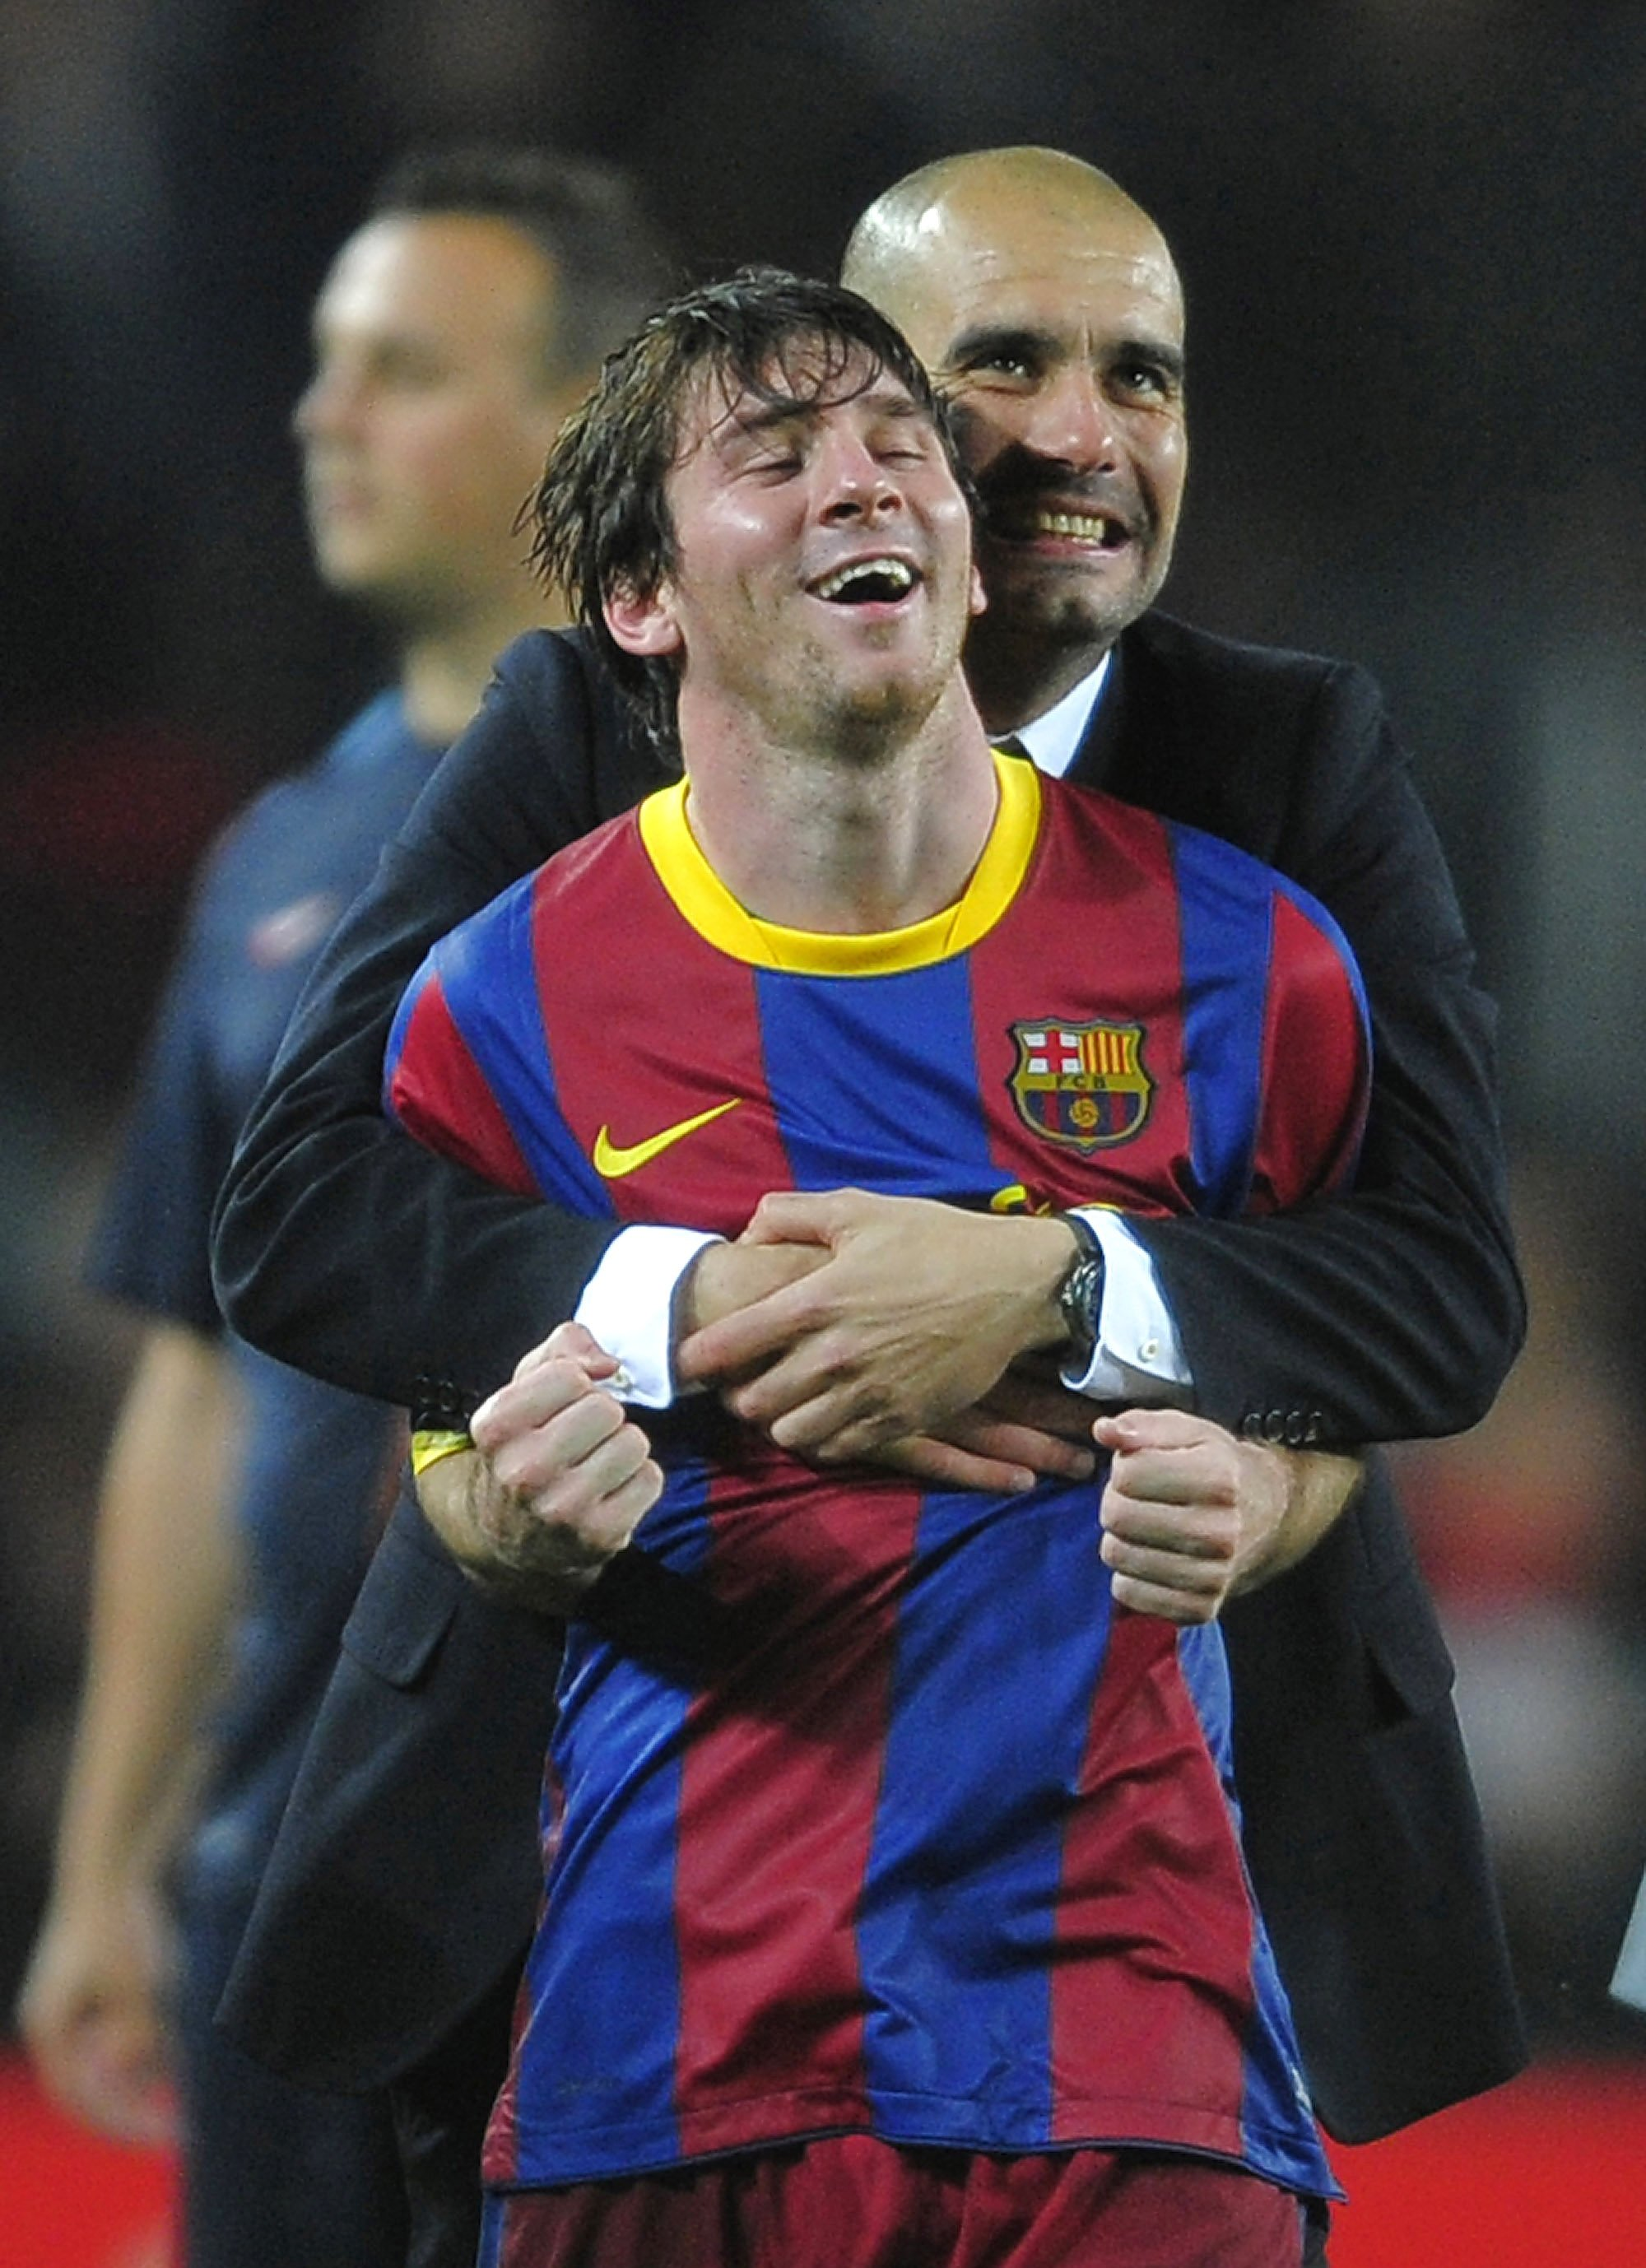 Lionel Messi and Pep Guardiola celebrate a Champions League victory in Barcelona, Spain, May 3, 2011. (AP Photo)